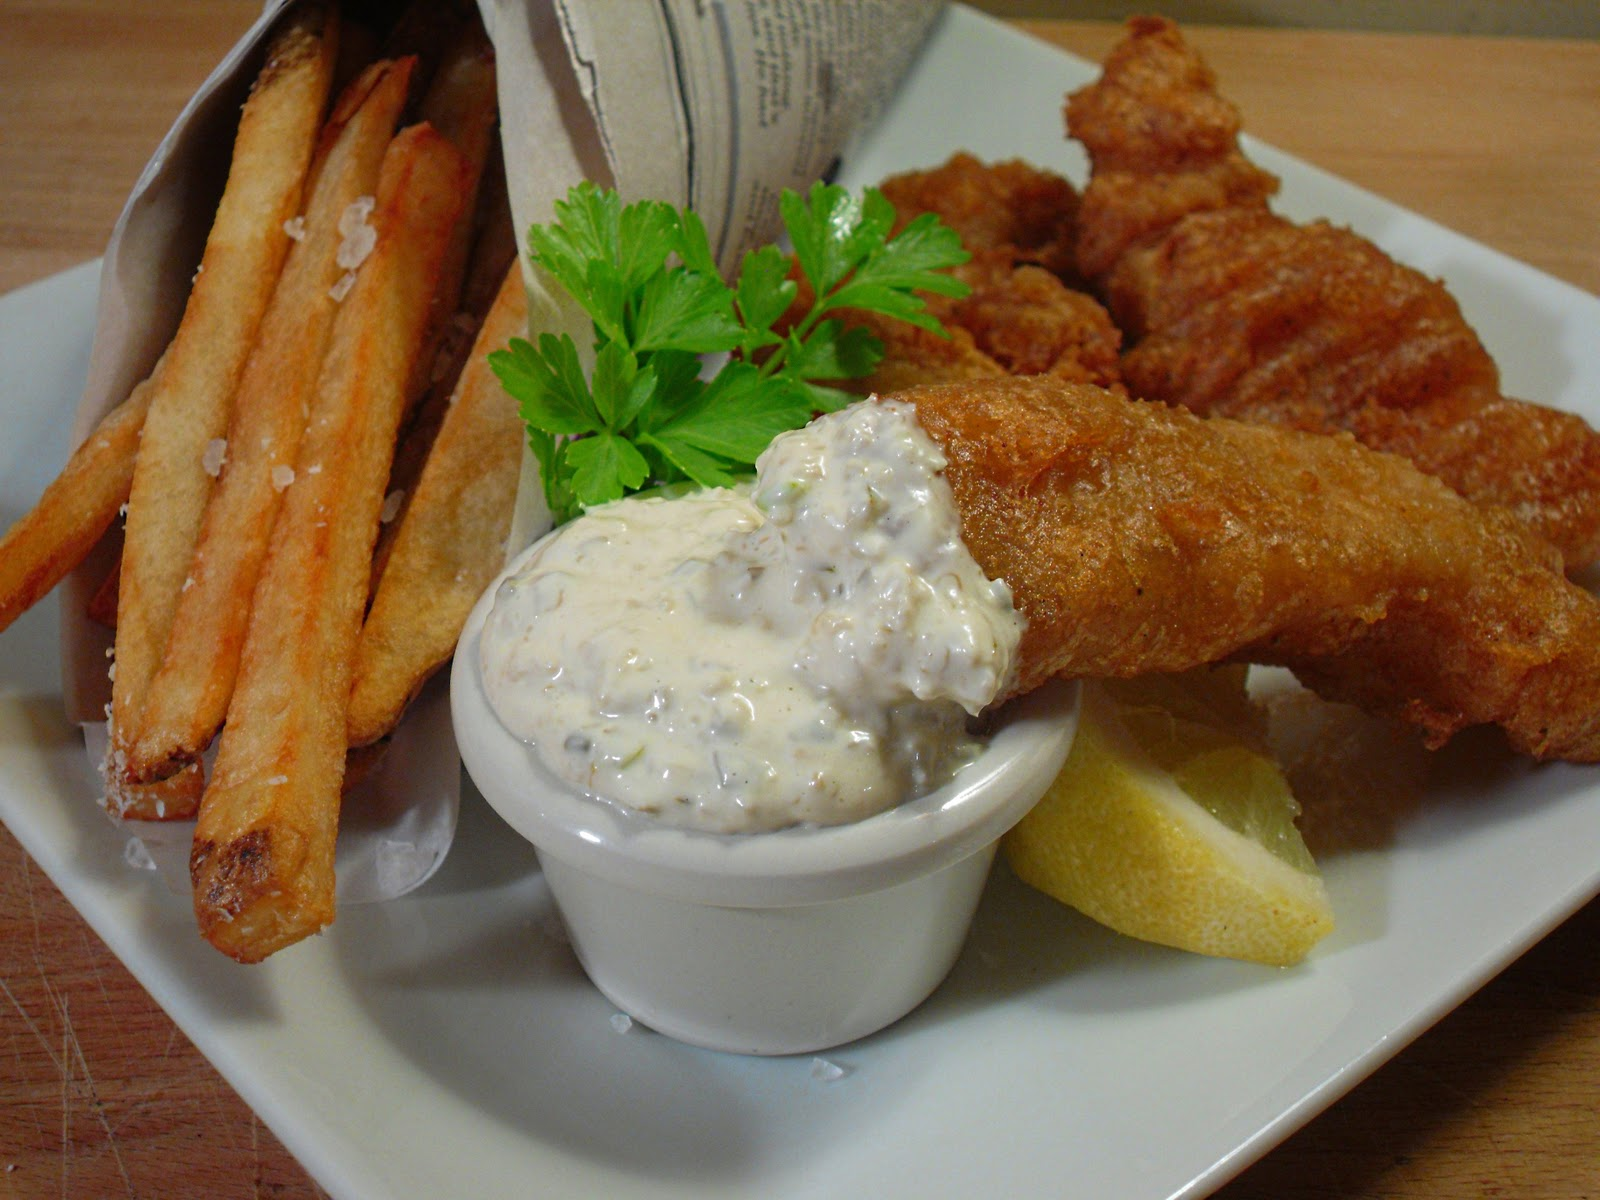 Comfy Cuisine: Beer-Battered Fish & Chips - London Style